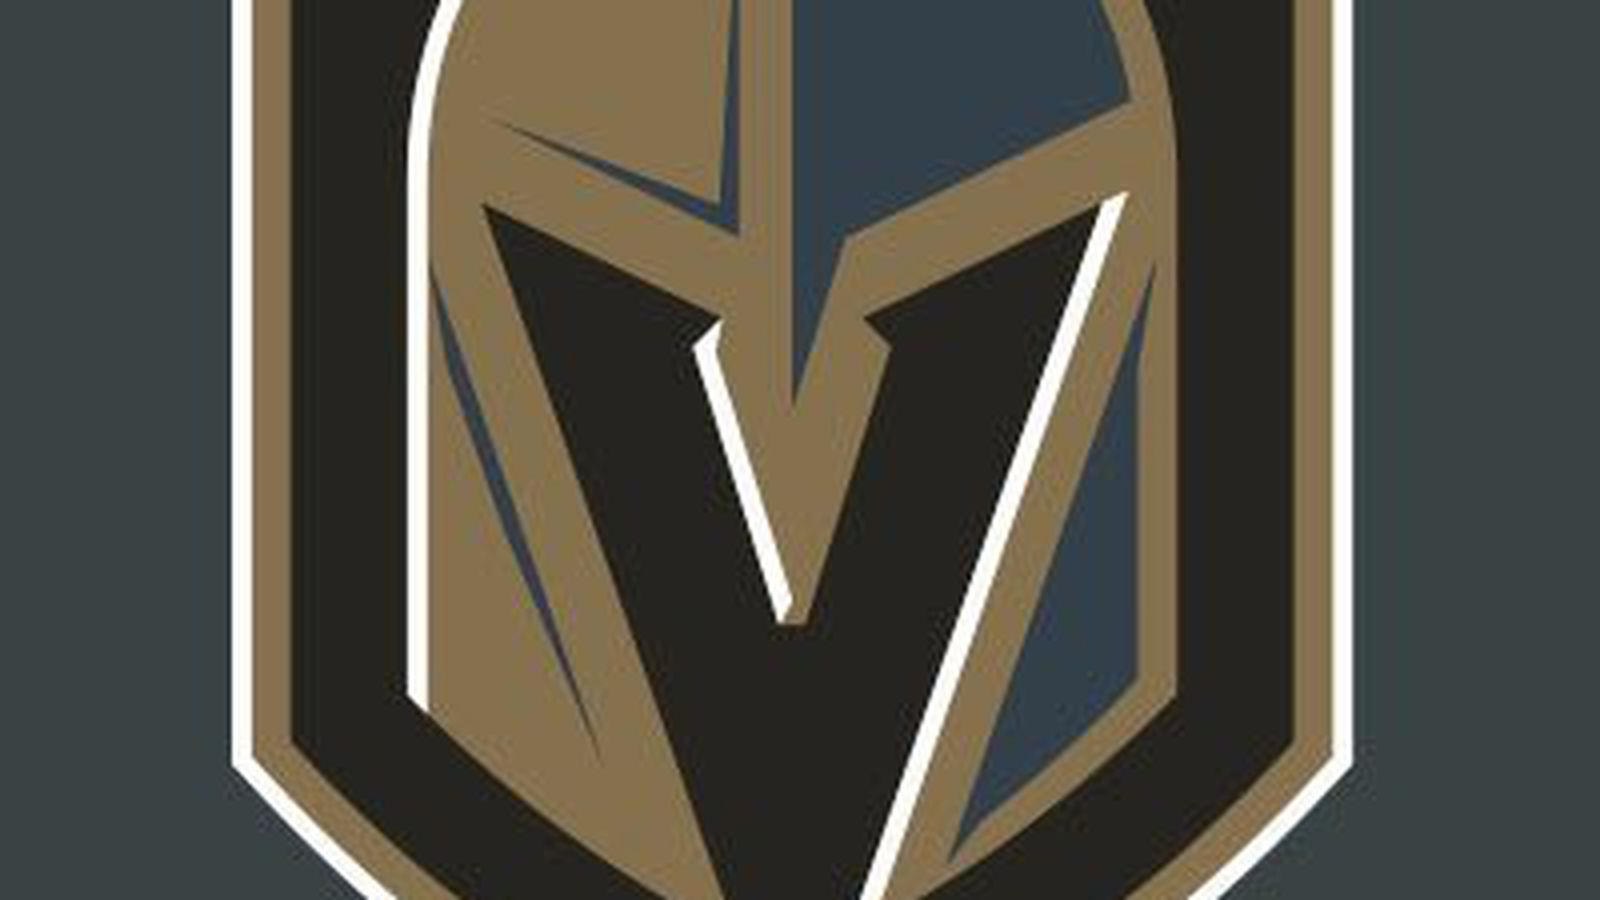 Atlanta Hawks Wallpaper Hd The Vegas Golden Knights Are The Nhl S Newest Expansion